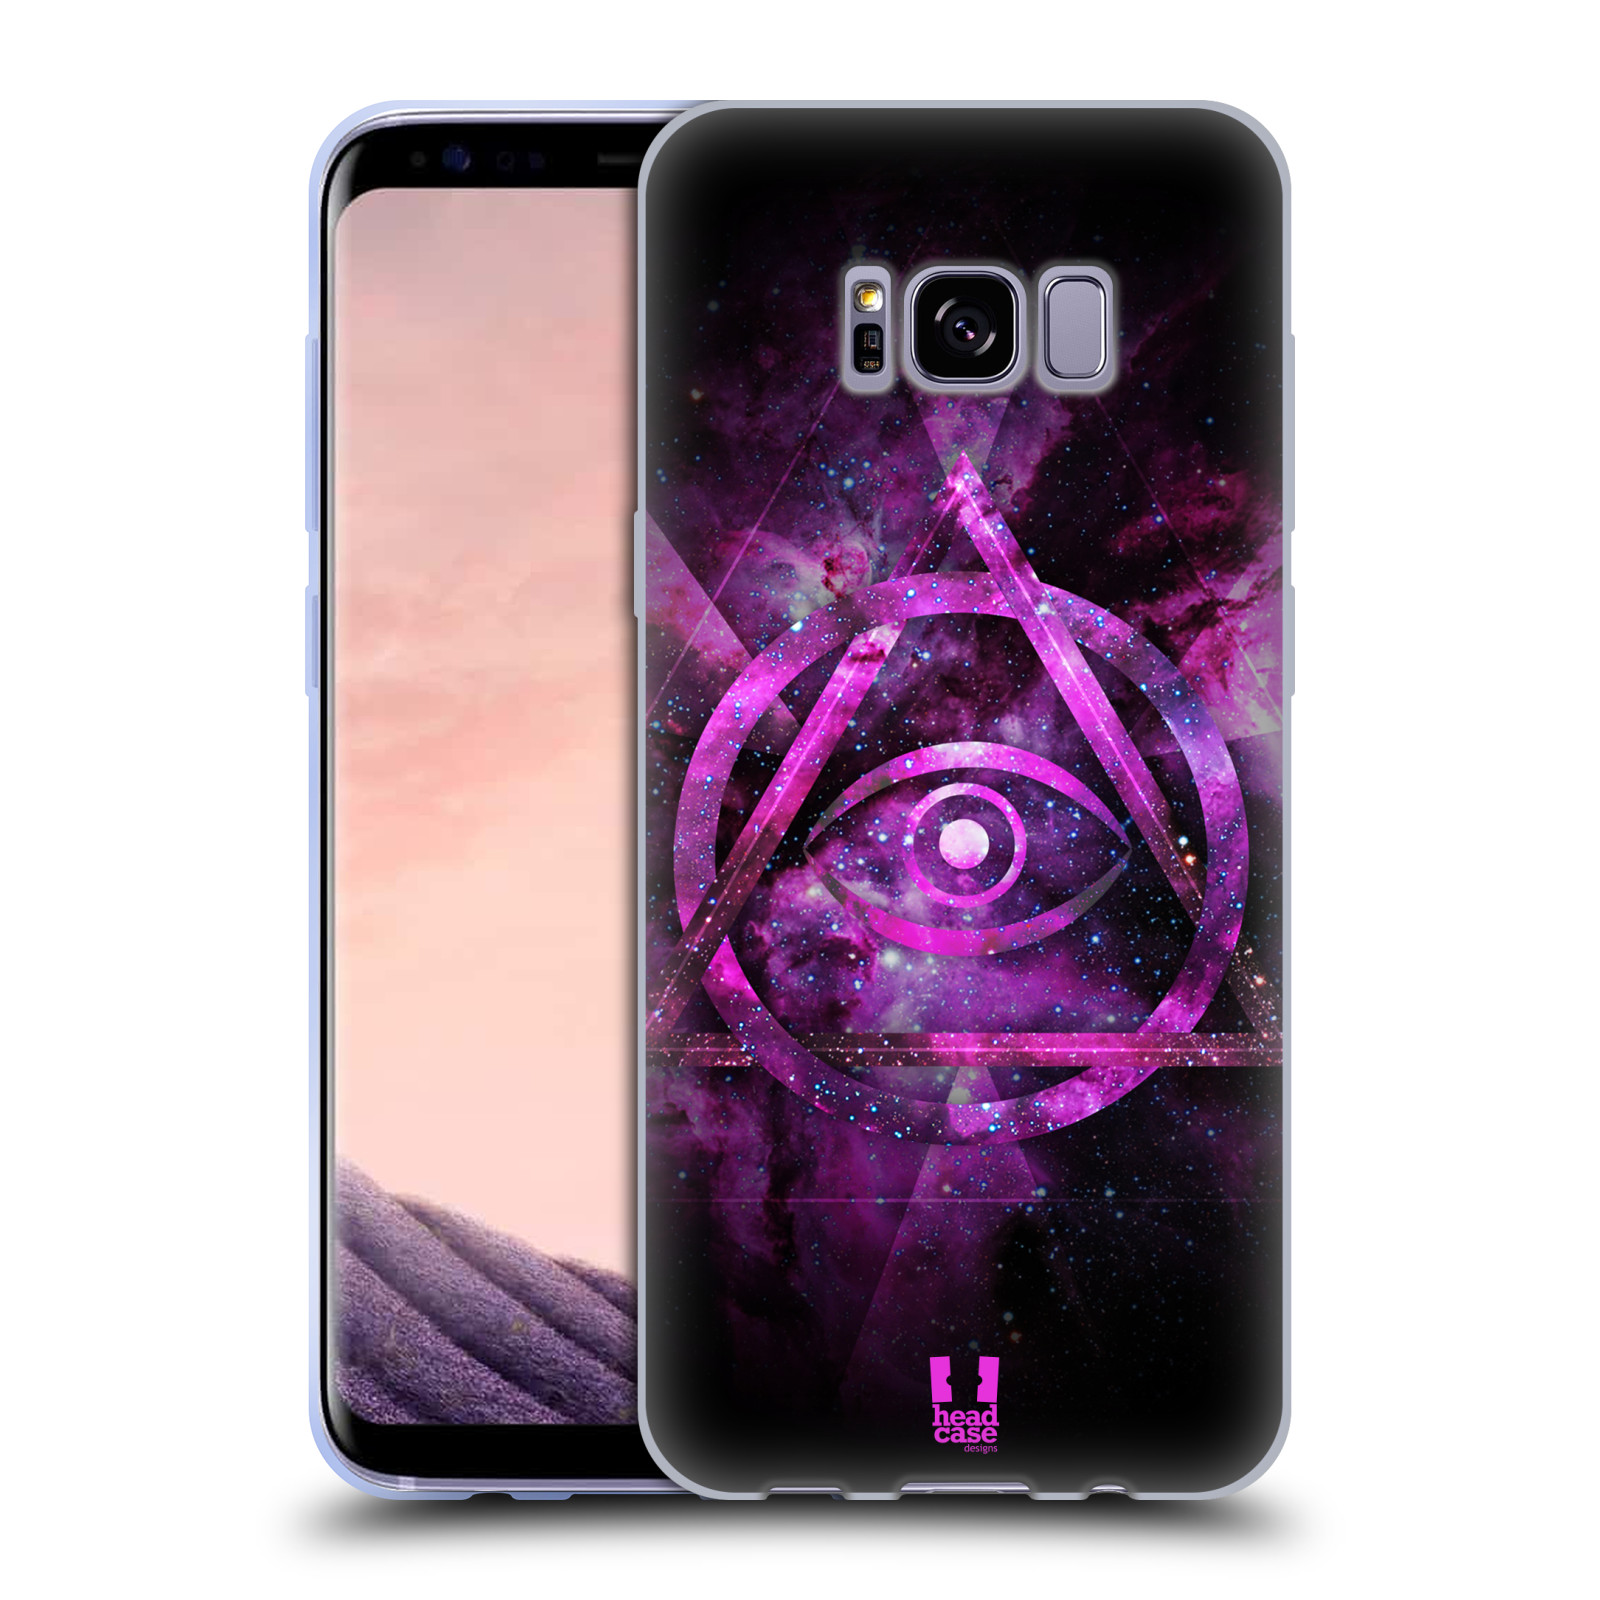 HEAD-CASE-DESIGNS-PROVIDENCE-SOFT-GEL-CASE-FOR-SAMSUNG-GALAXY-S8-S8-PLUS